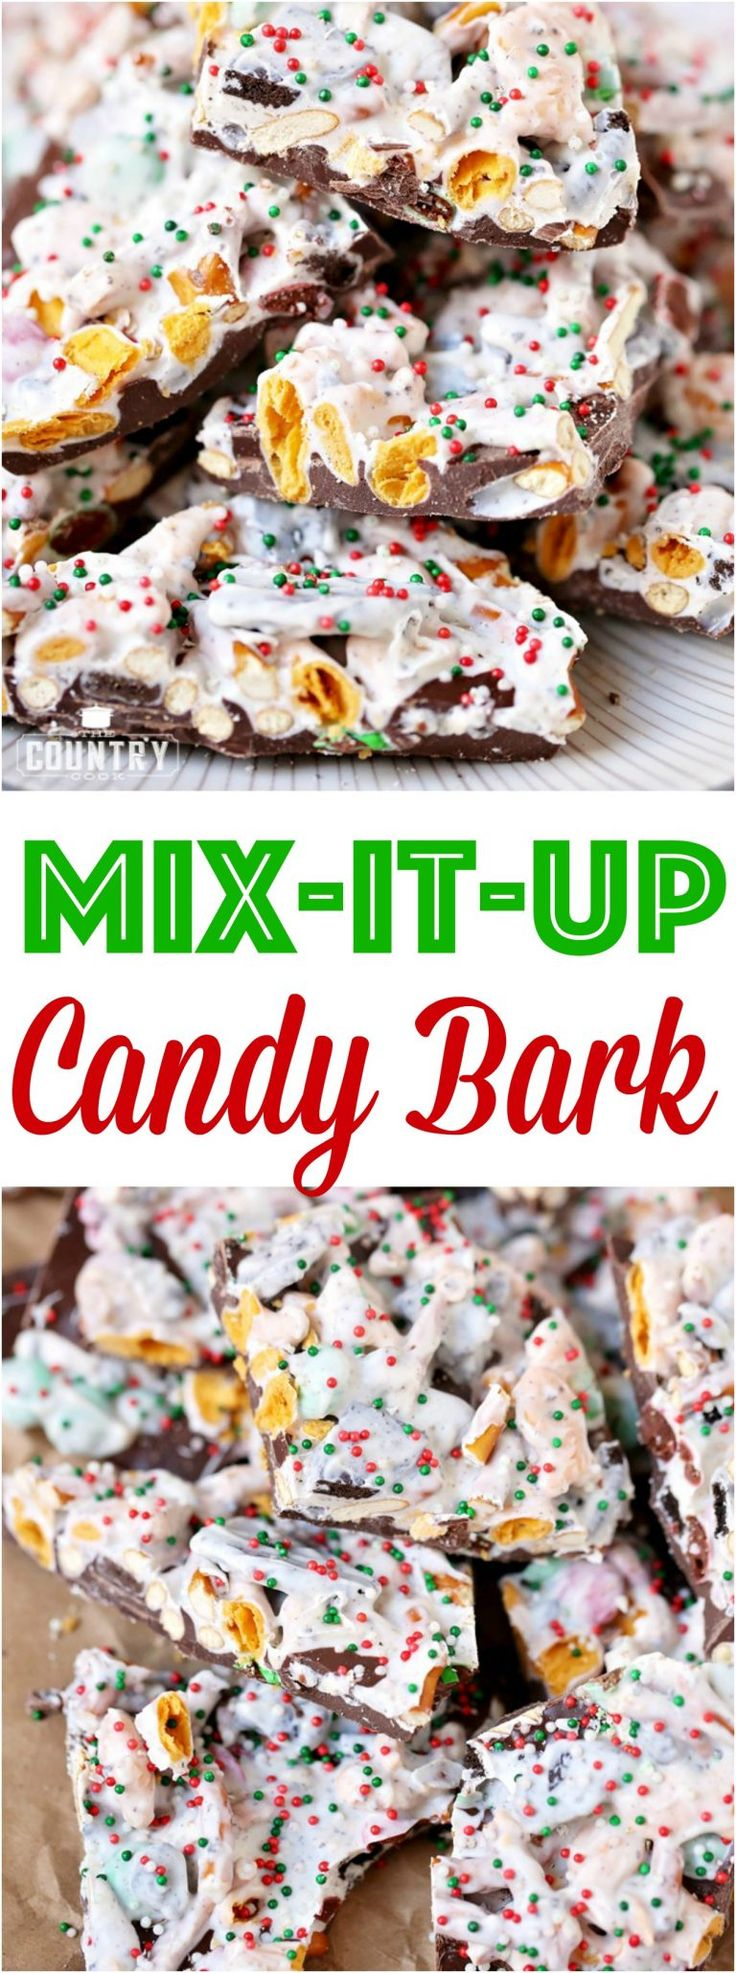 Mix-It-Up Christmas Candy Bark (No-Bake) recipe from The Country Cook #candy #Christmas #bark #desserts #snacks #gifts #homemade